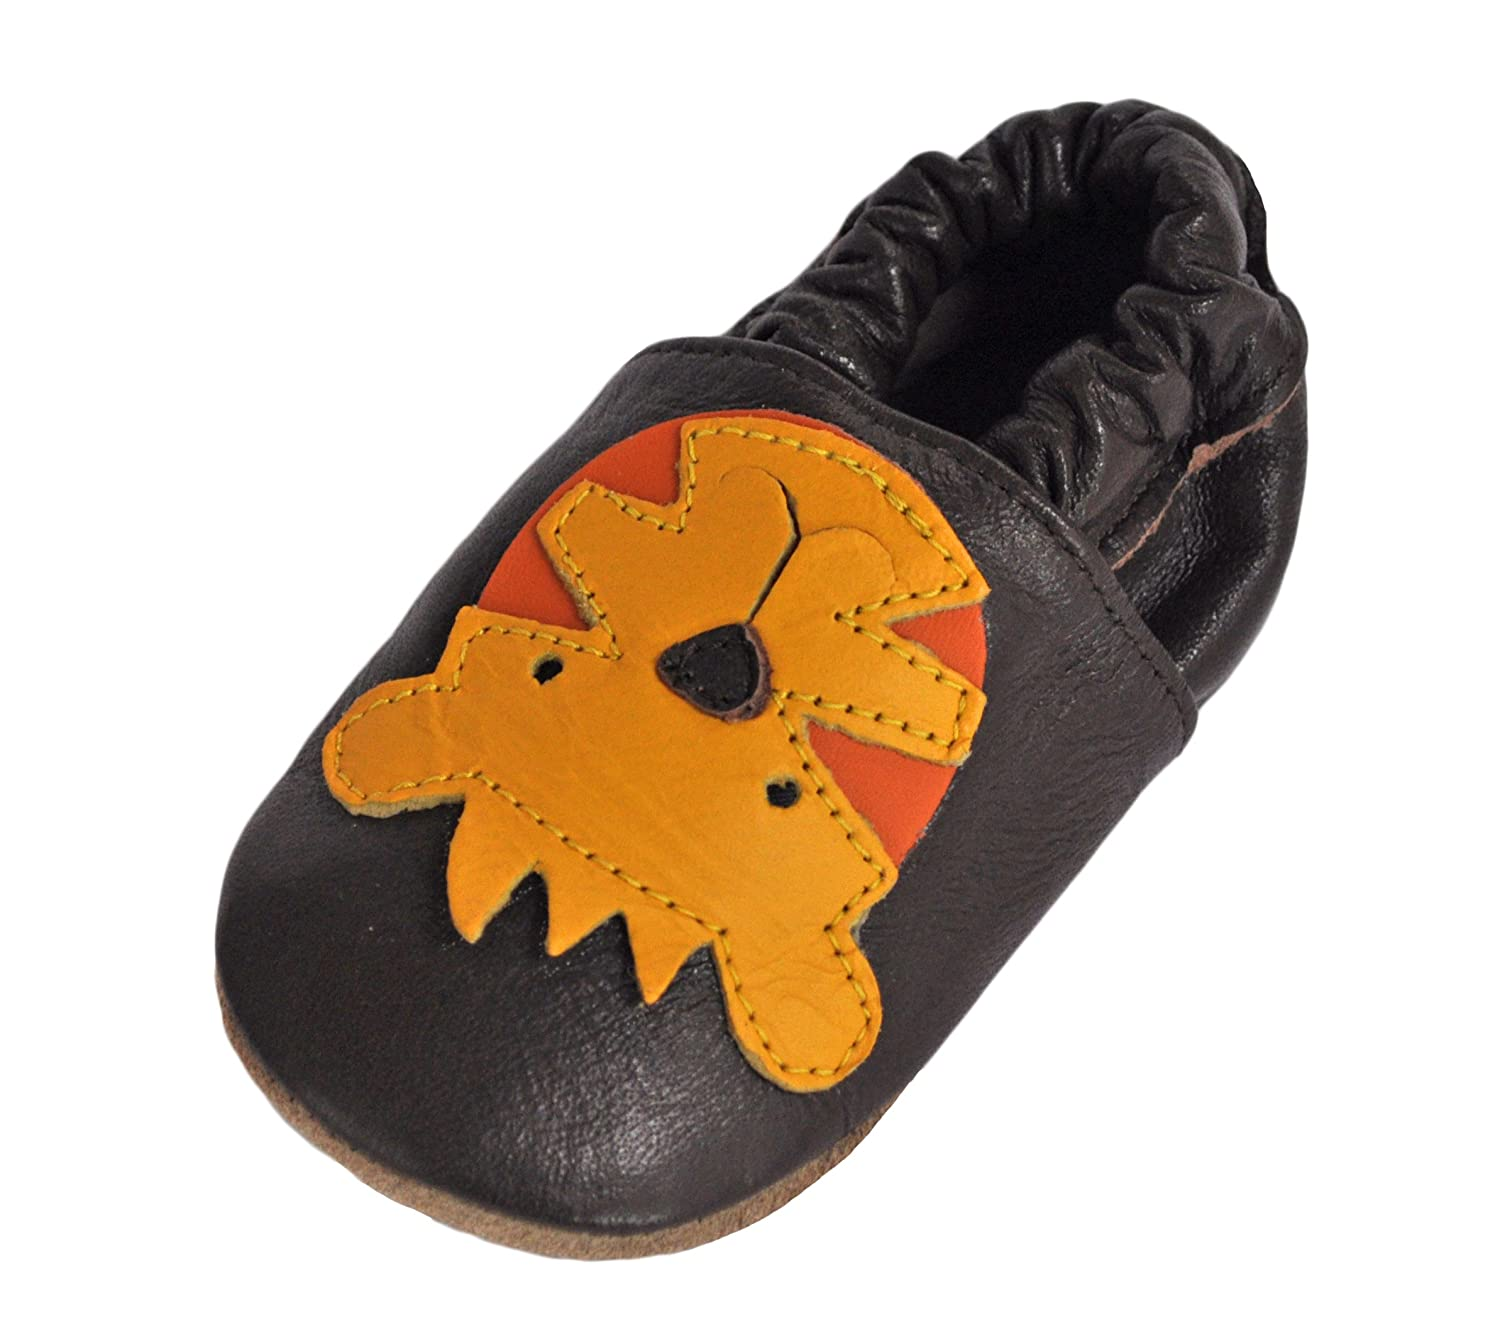 108 Little Tiger 0-6 Month Tipsie Toes Soft Sole Baby Girls Boys Leather Shoes Brown